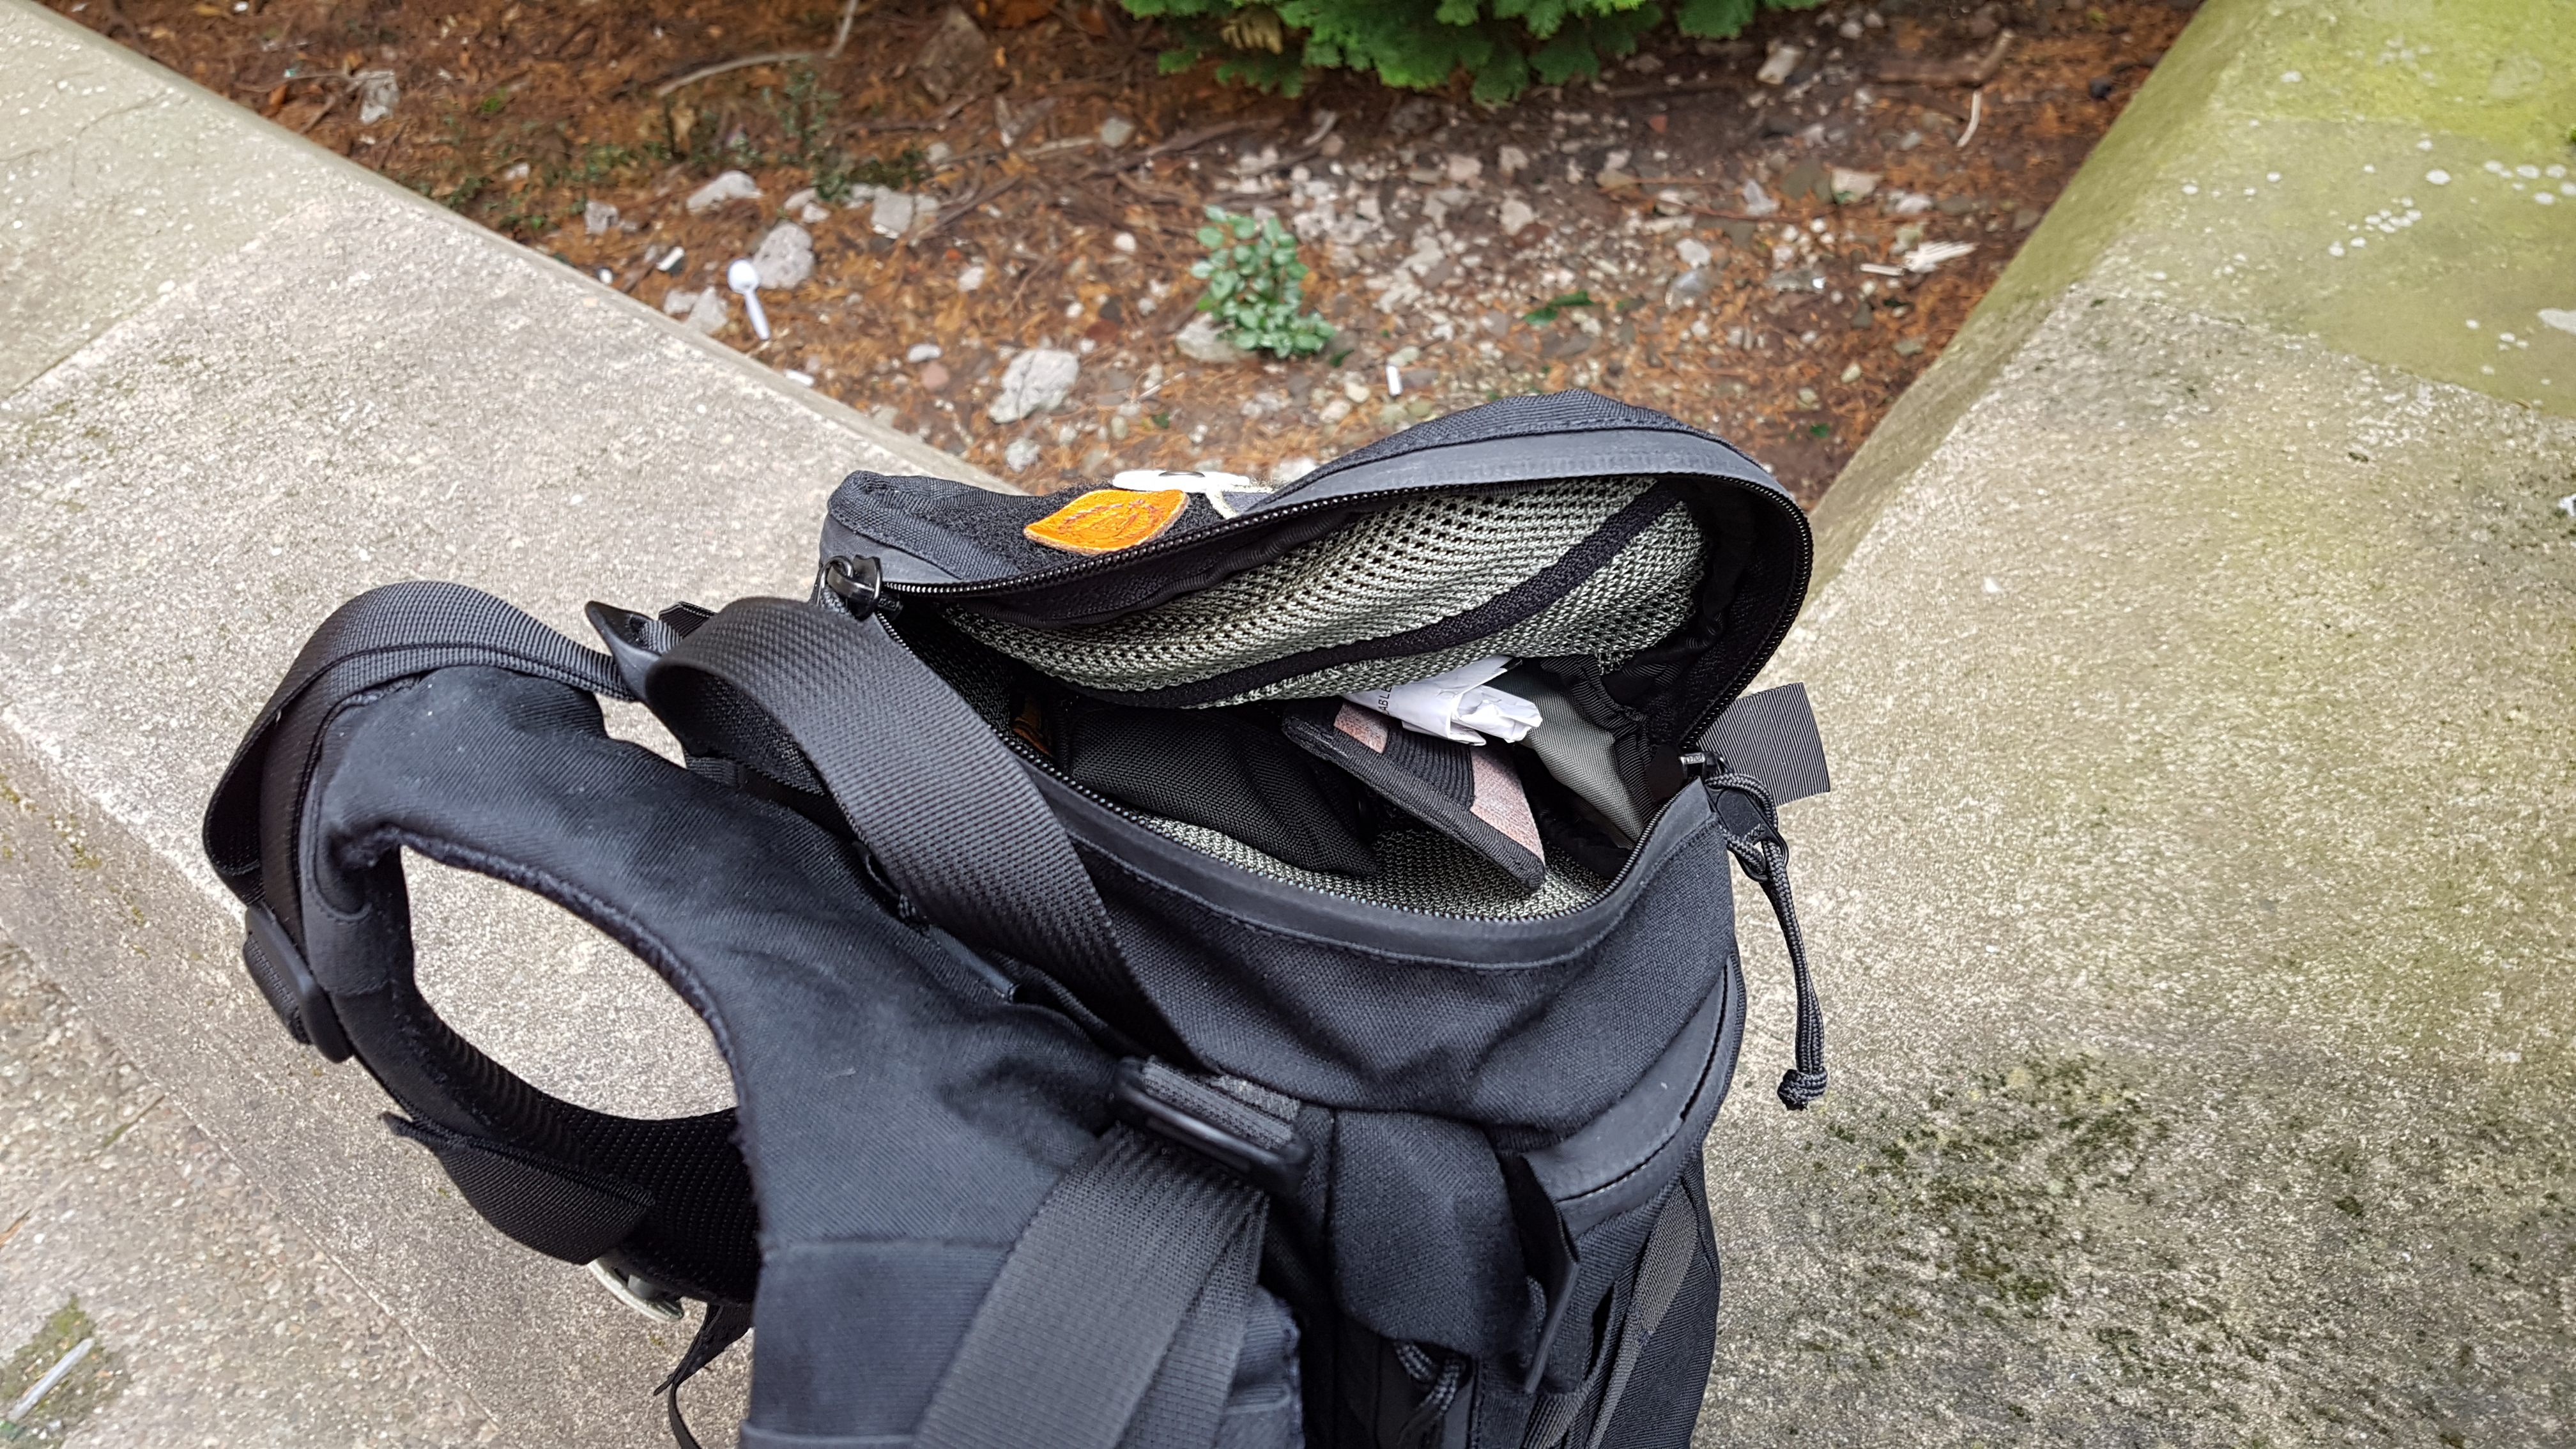 Mystery Ranch 1 Day Assault Pack top pocket open quick access mesh pocket grab handle shoulder yoke 1DAP review